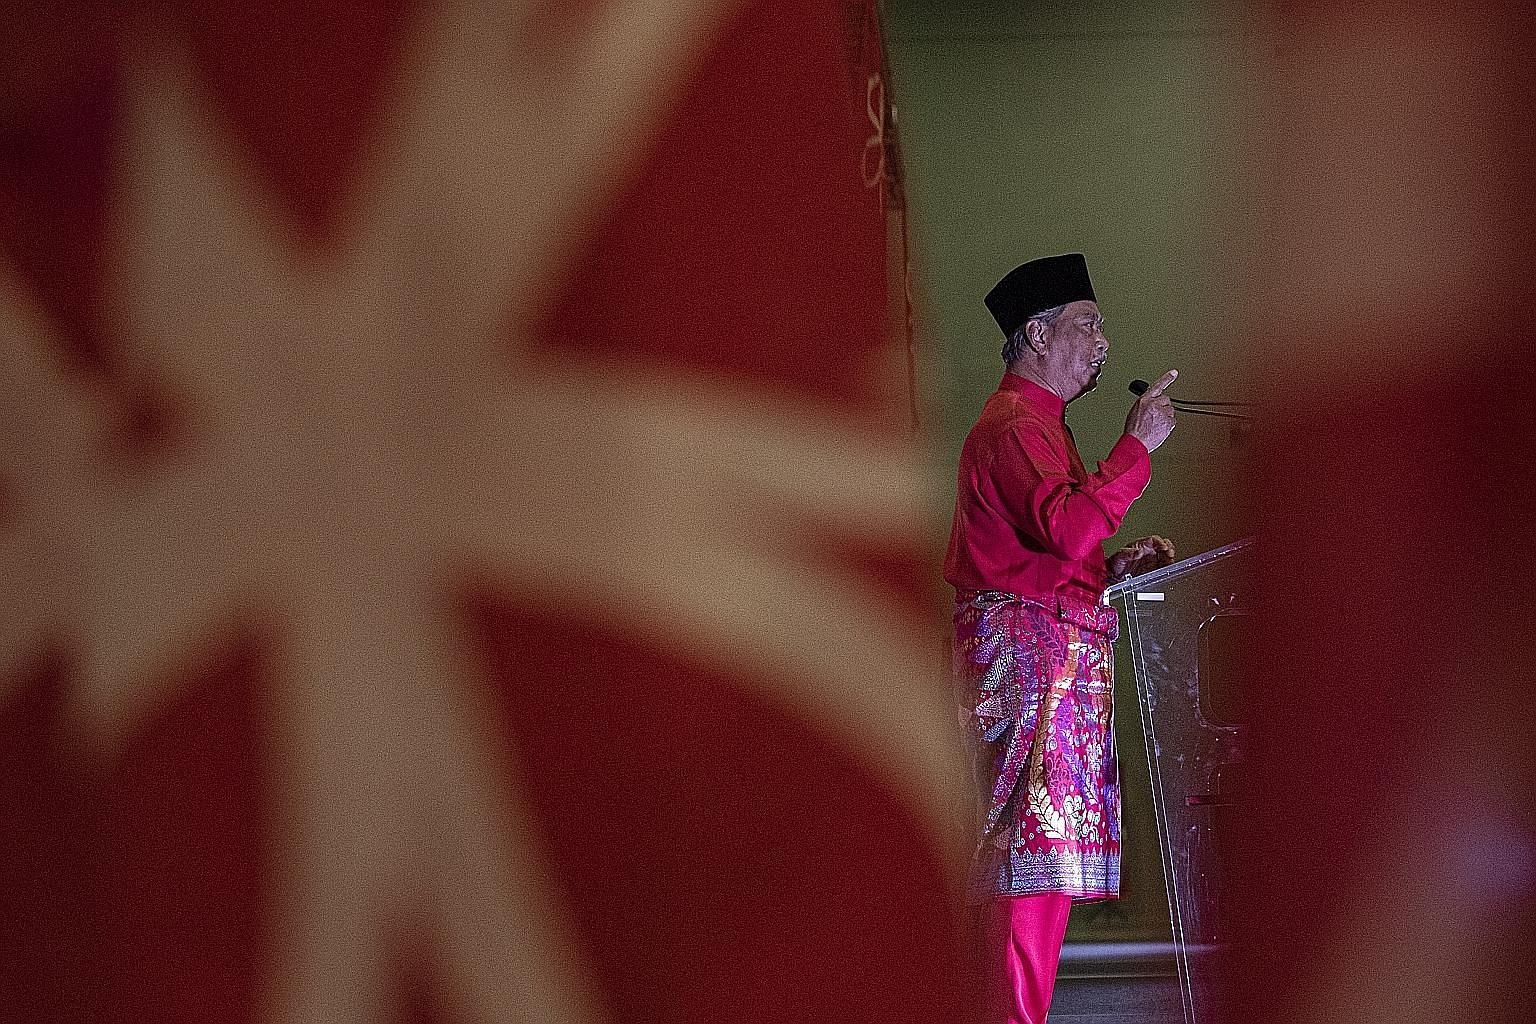 Malaysian Prime Minister Muhyiddin Yassin delivering a speech at Parti Pribumi Bersatu Malaysia's fourth anniversary celebrations in Kuala Lumpur earlier this month. He faces the very real possibility that his crop of MPs would be halved in the event